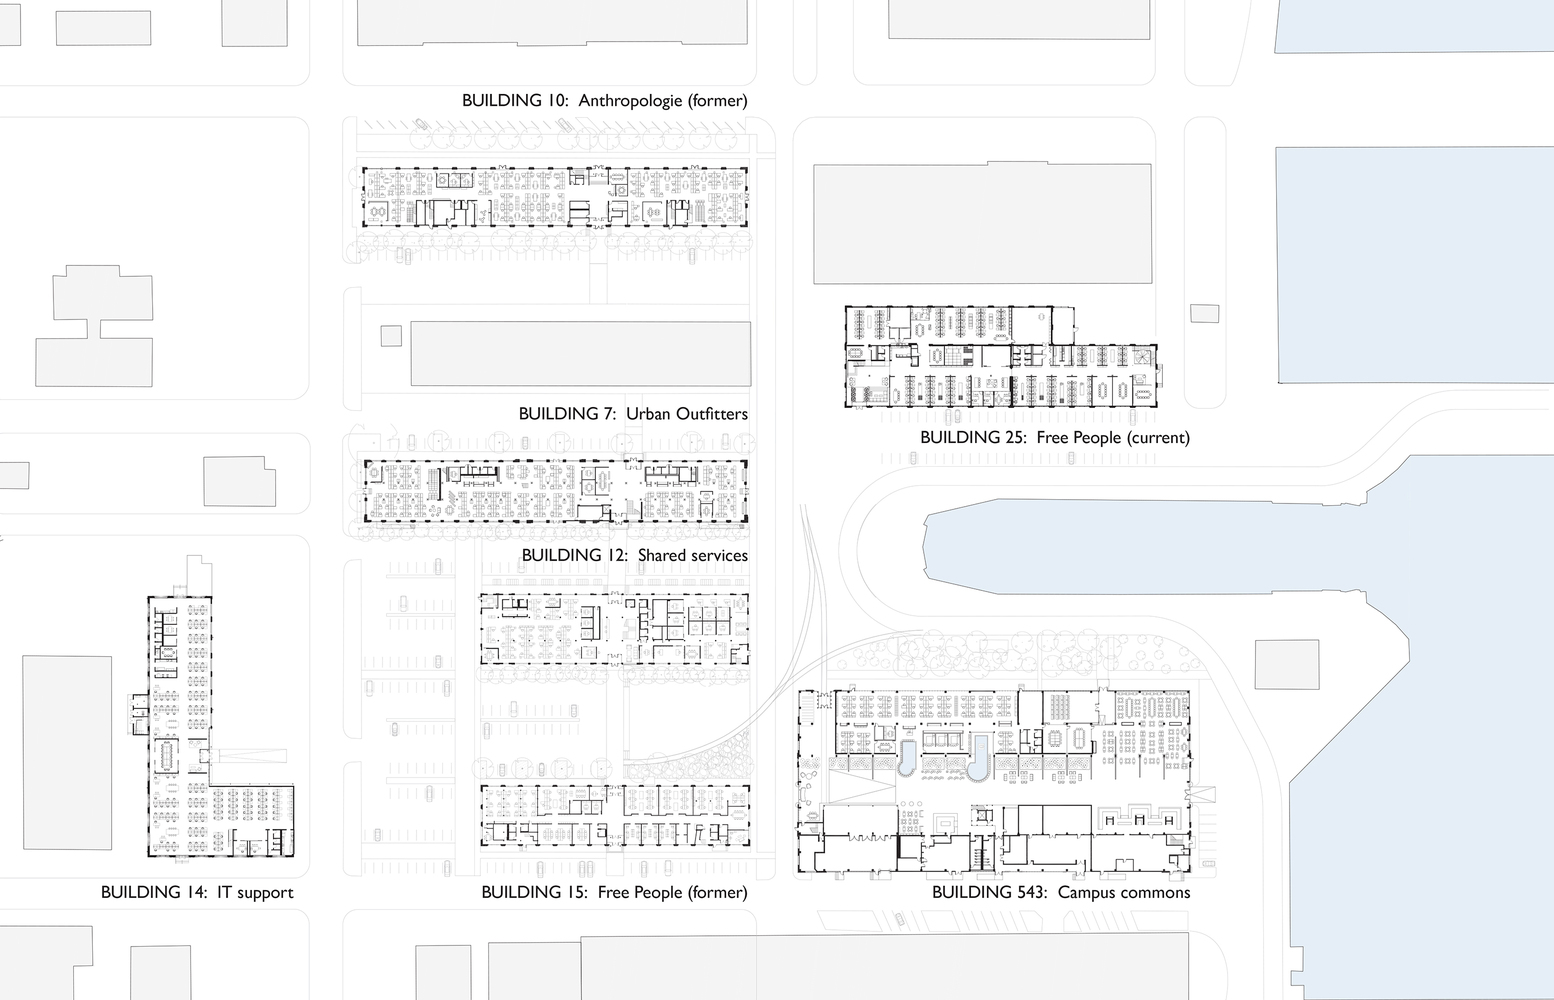 Gallery of Urban Outfitters Corporate Campus MSR Design 42 – Urban Outfitters Business Plan